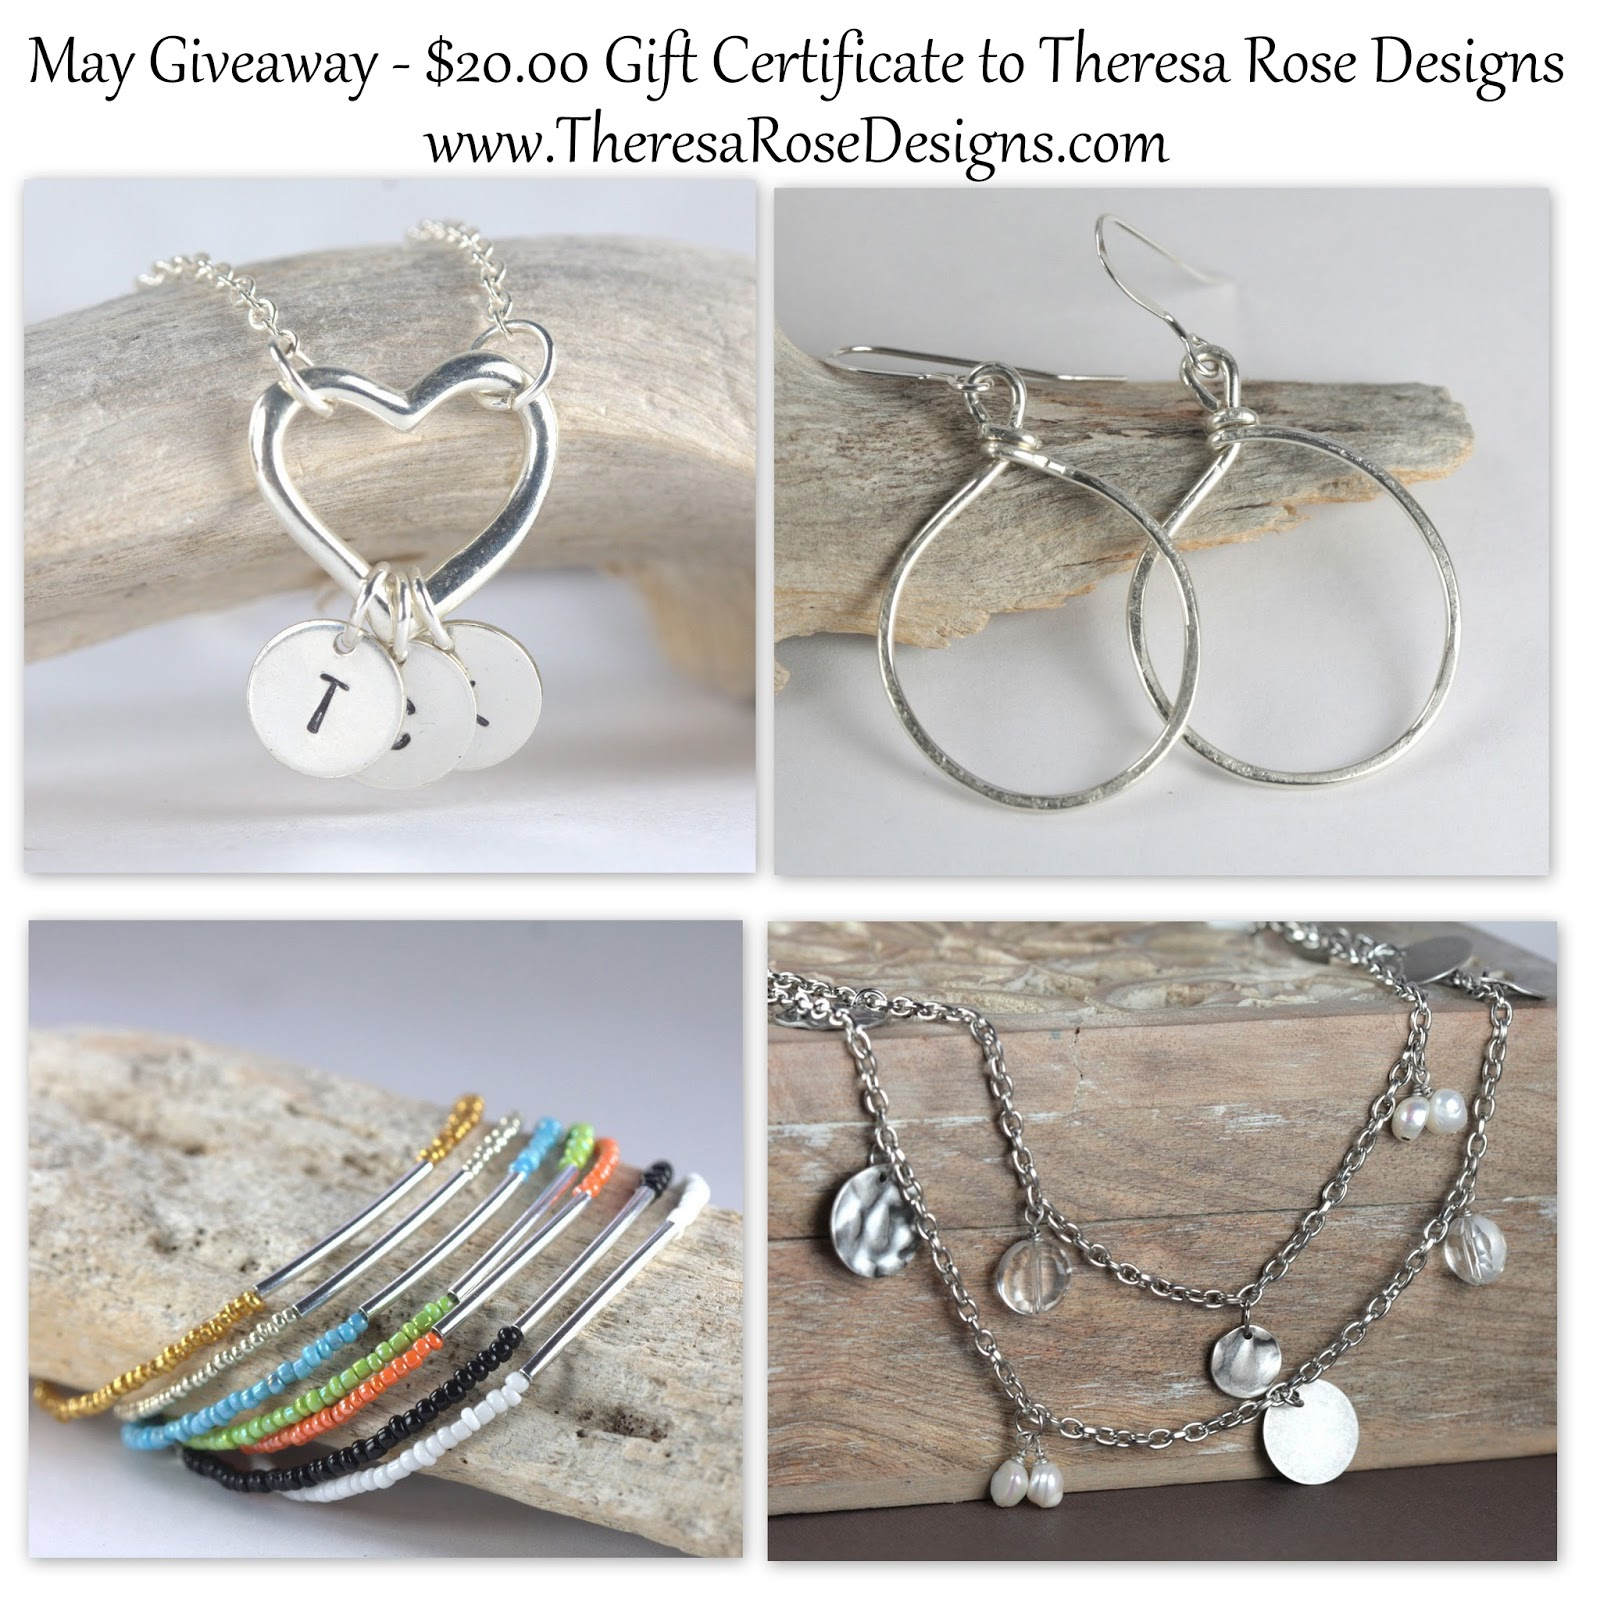 Theresa Rose Designs - May Giveaway